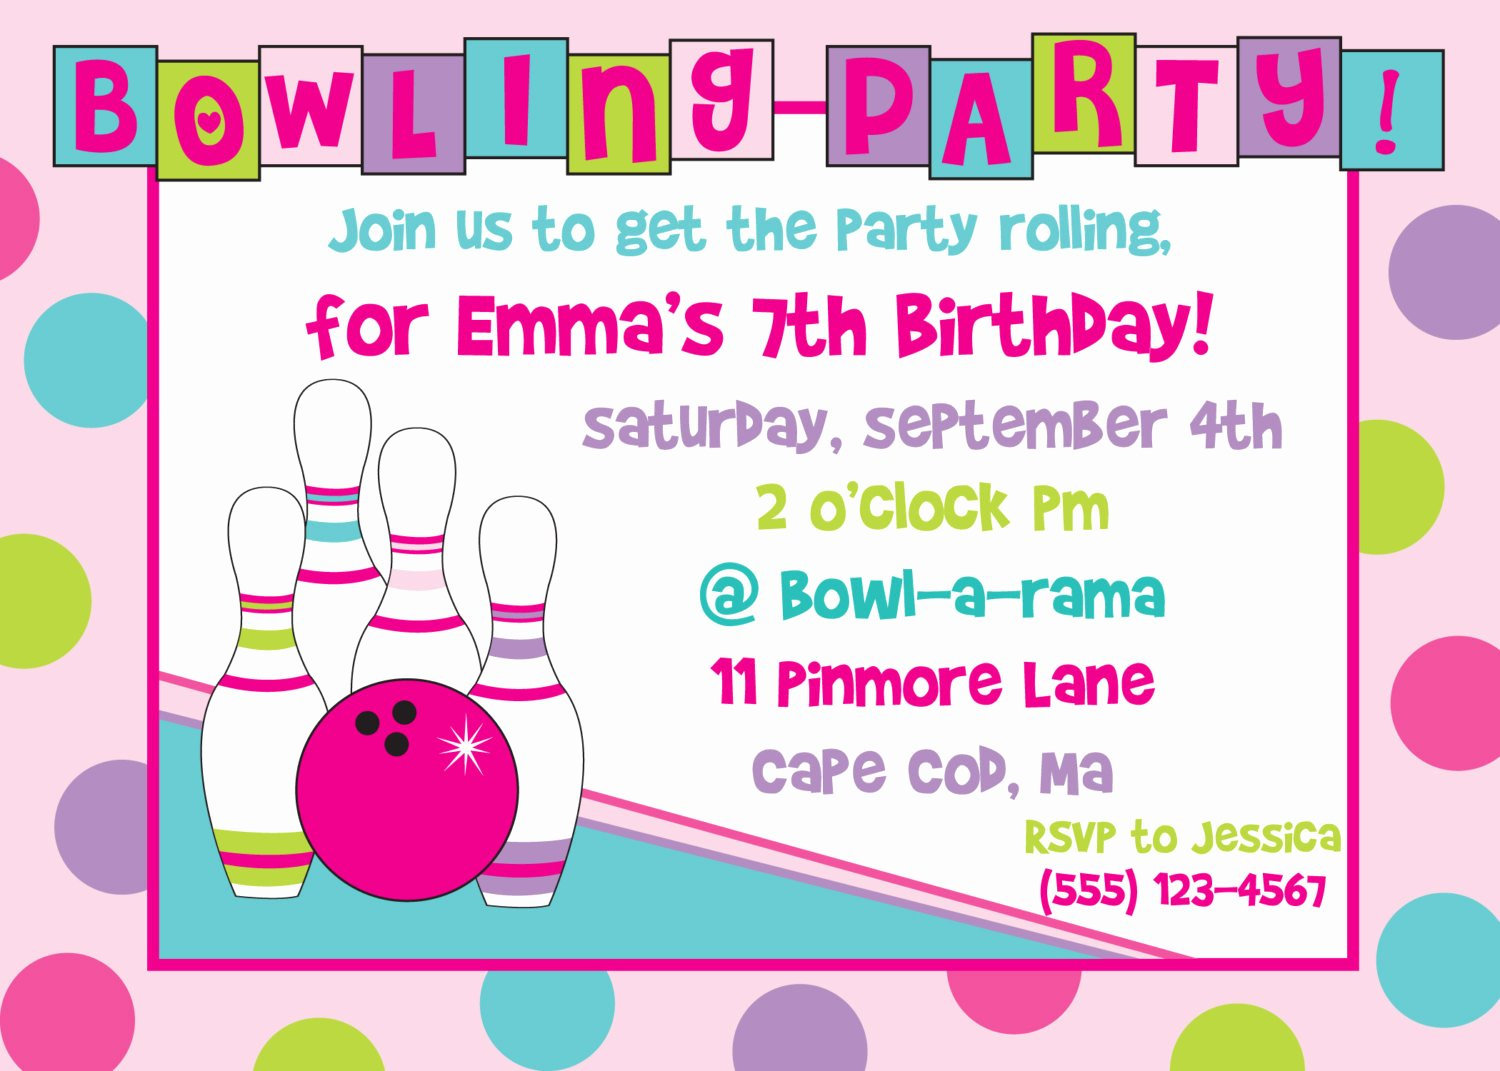 Bowling Party Invitation Templates Elegant Bowling Birthday Party Invitation Girl by Anchorbluedesign